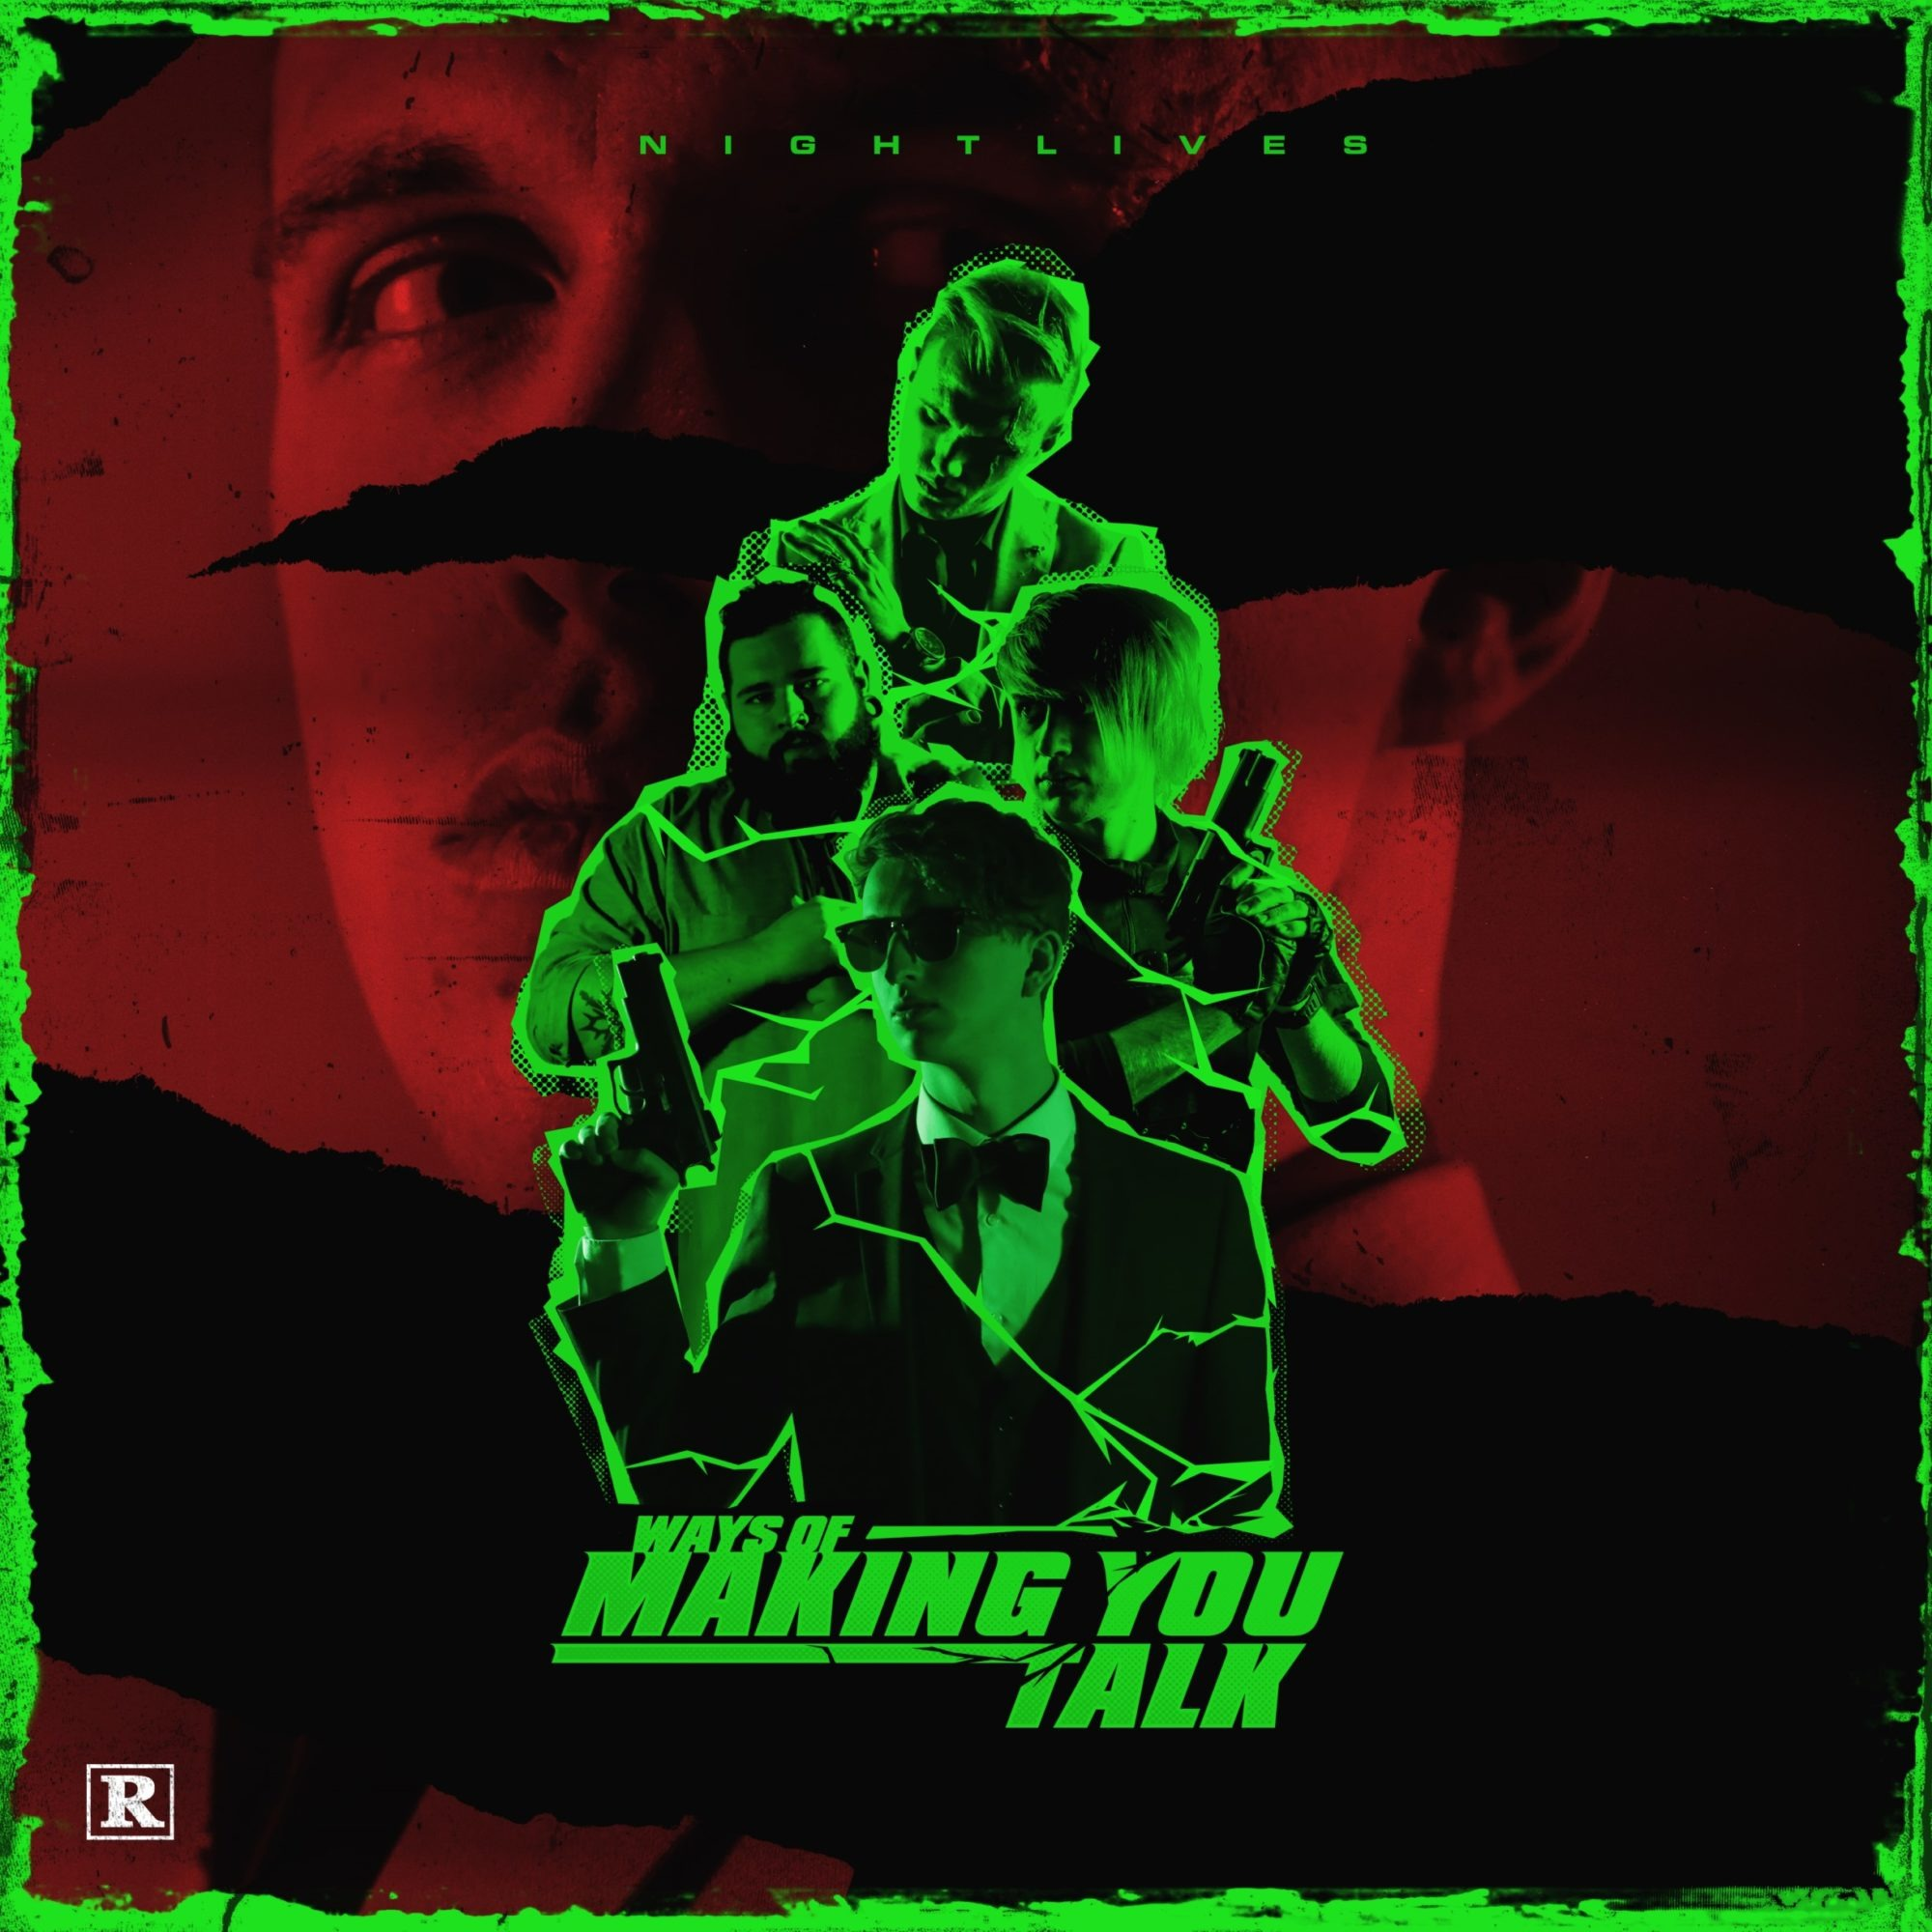 Nightlives - Ways Of Making You Talk/Under The Radar (Digital Download)